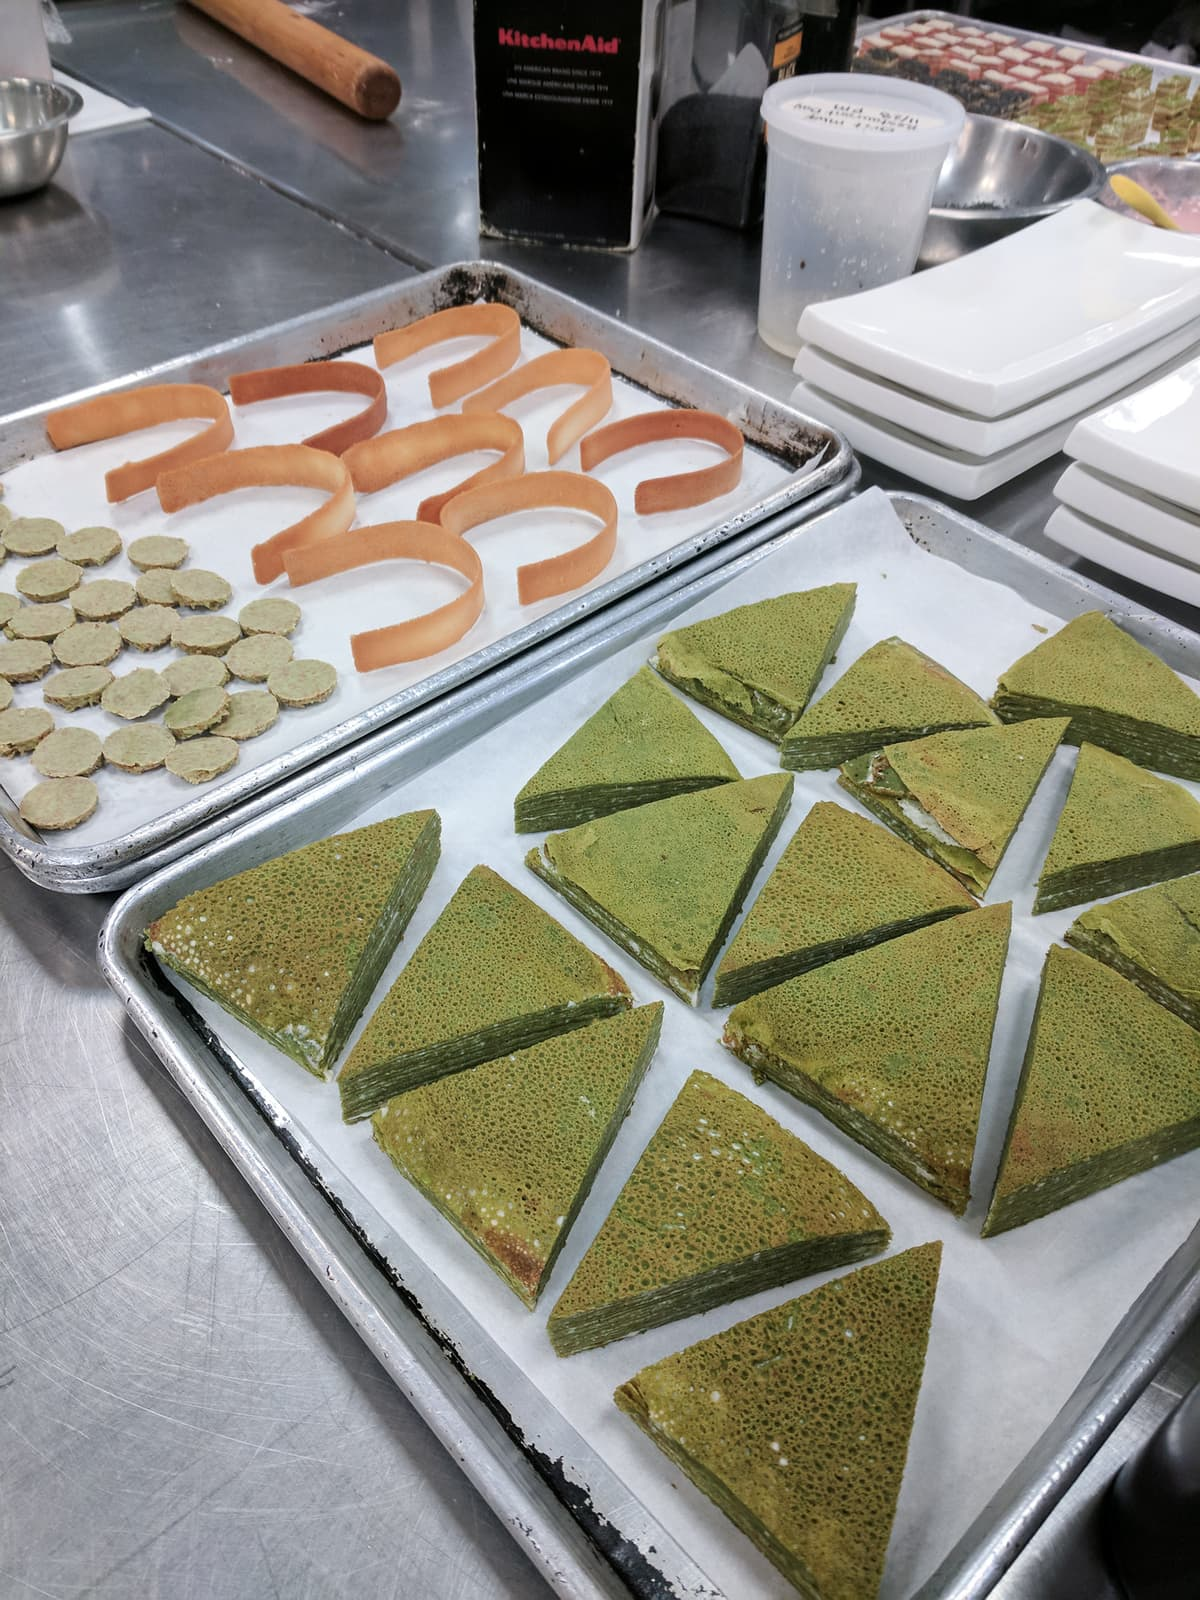 Slices of crepe cake and tuile laid on sheet trays